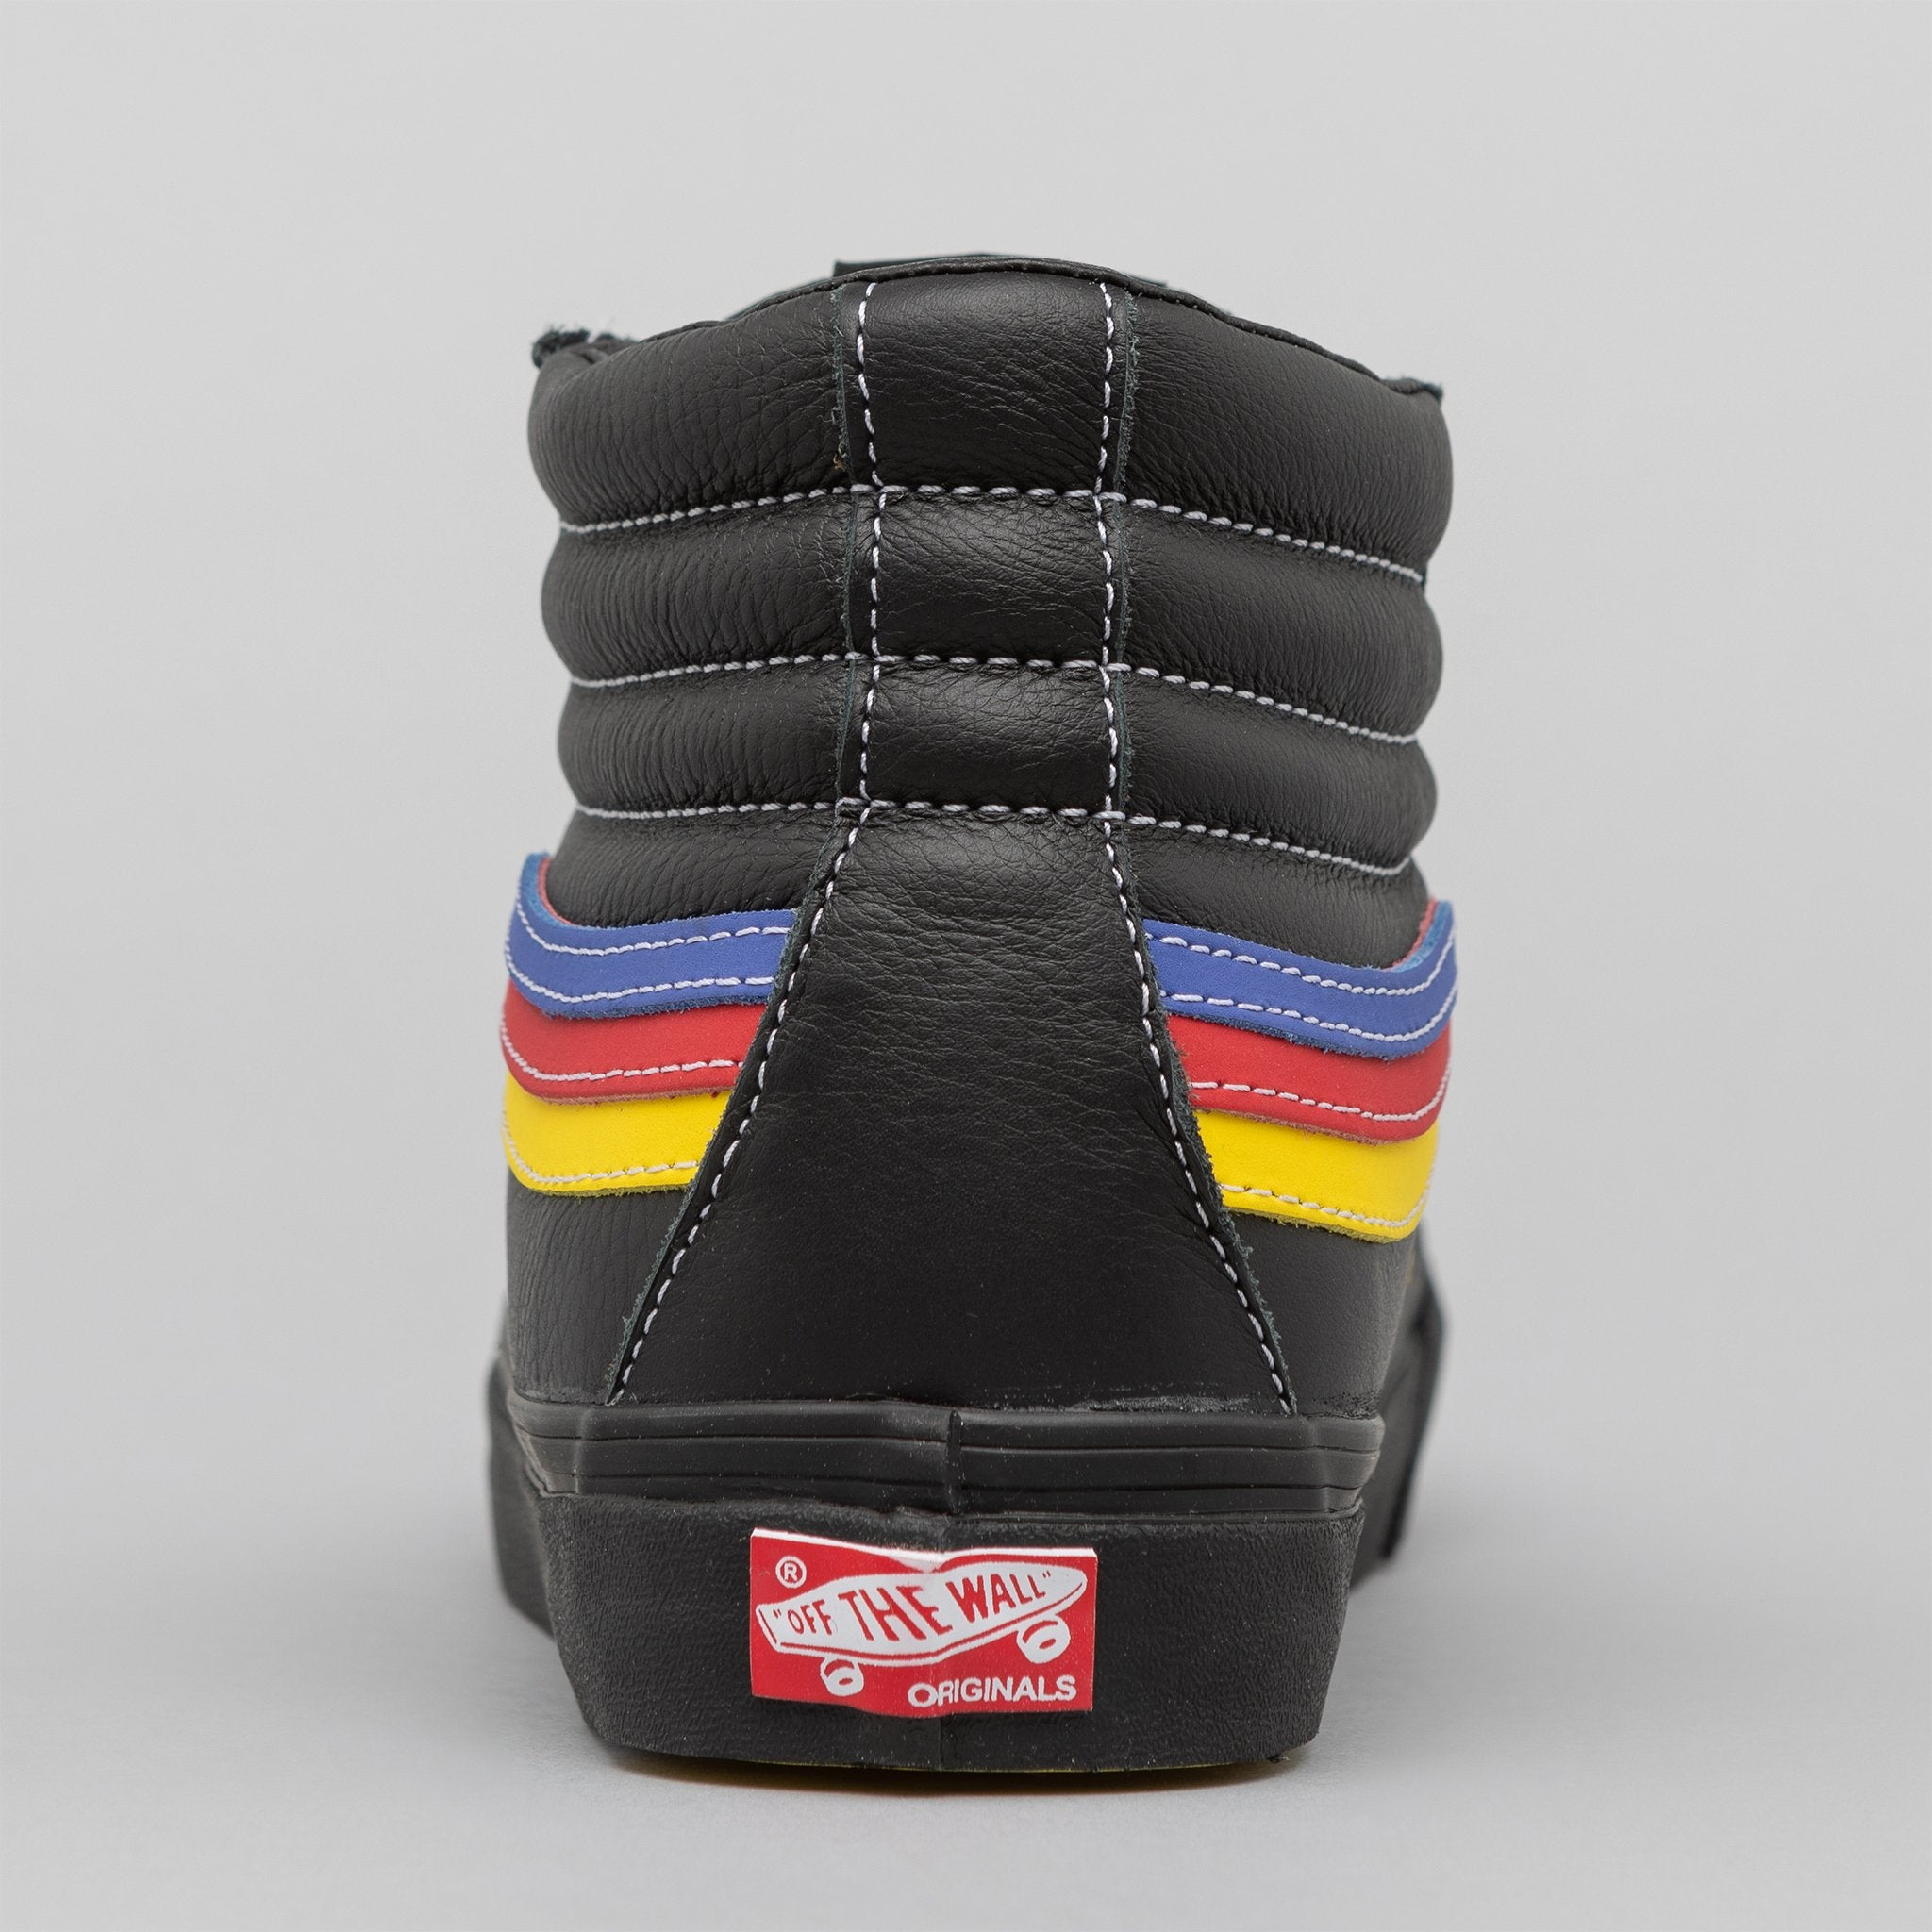 x Bows And Arrows 5x5 Sk8-Hi LX in Black